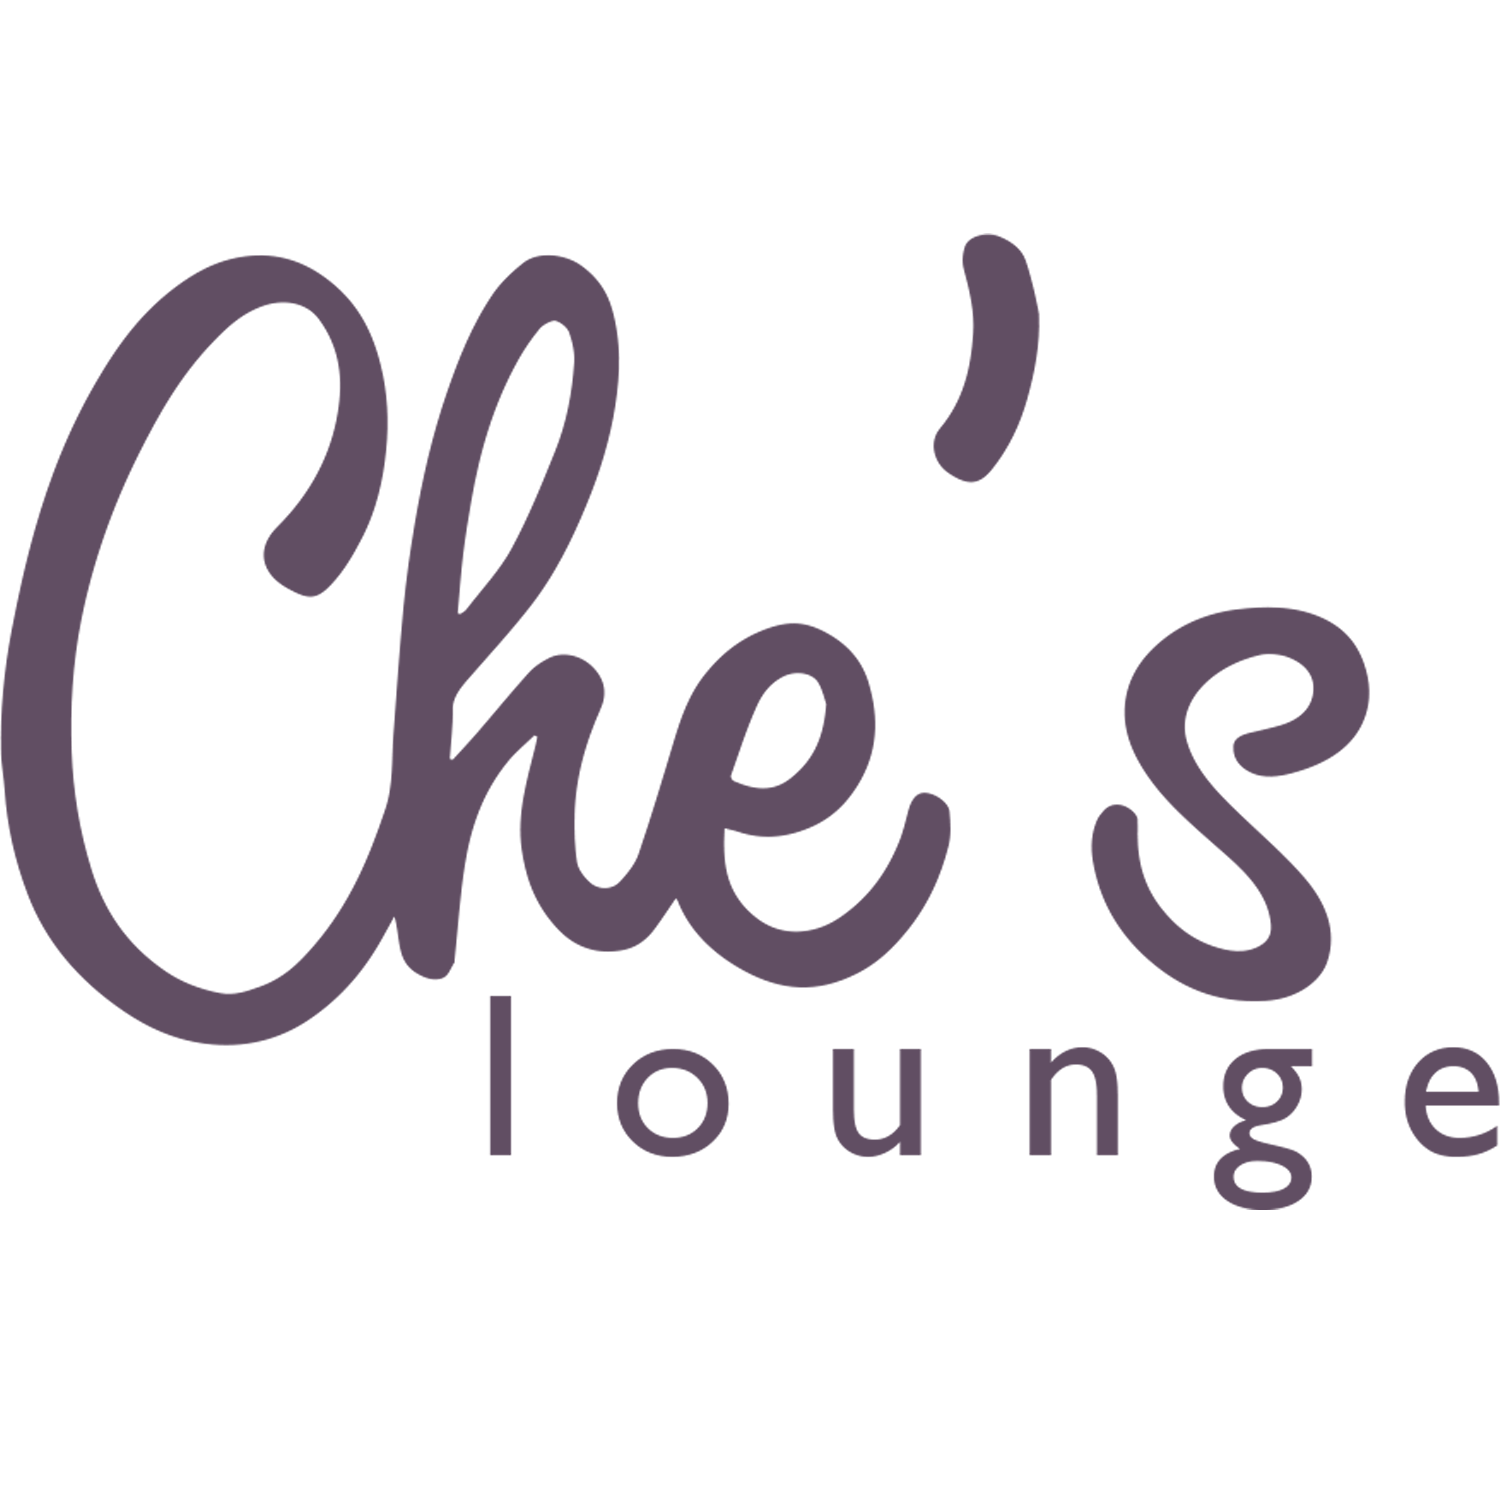 18-01 ChesLounge-logo-fnl (2).png